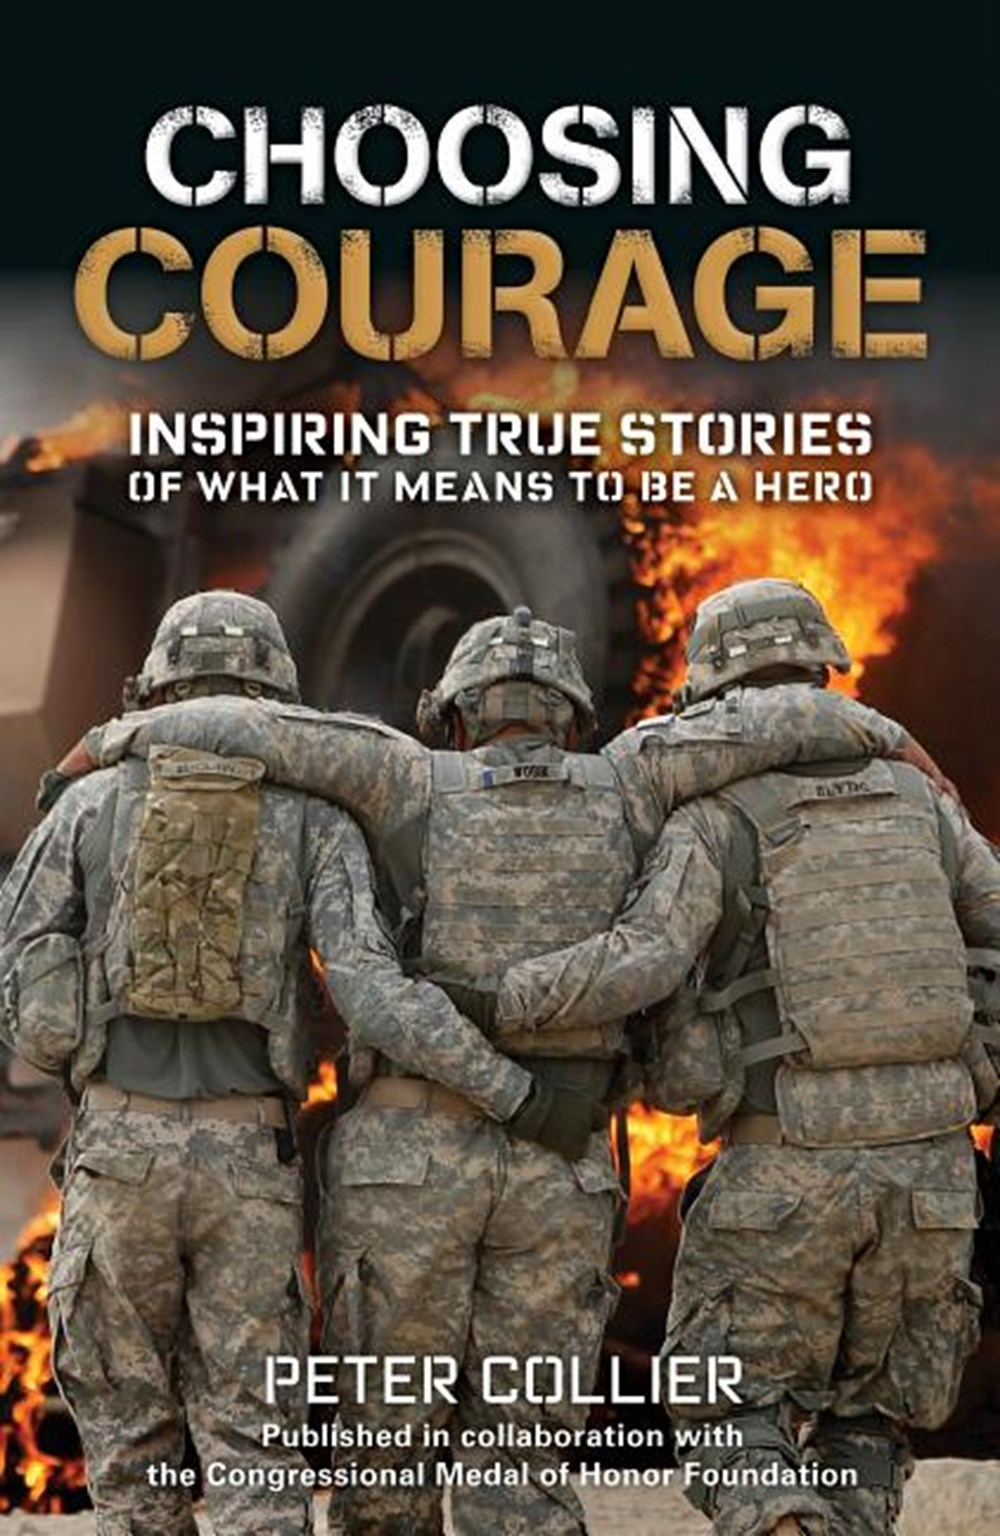 Choosing Courage Inspiring True Stories of What It Means to Be a Hero